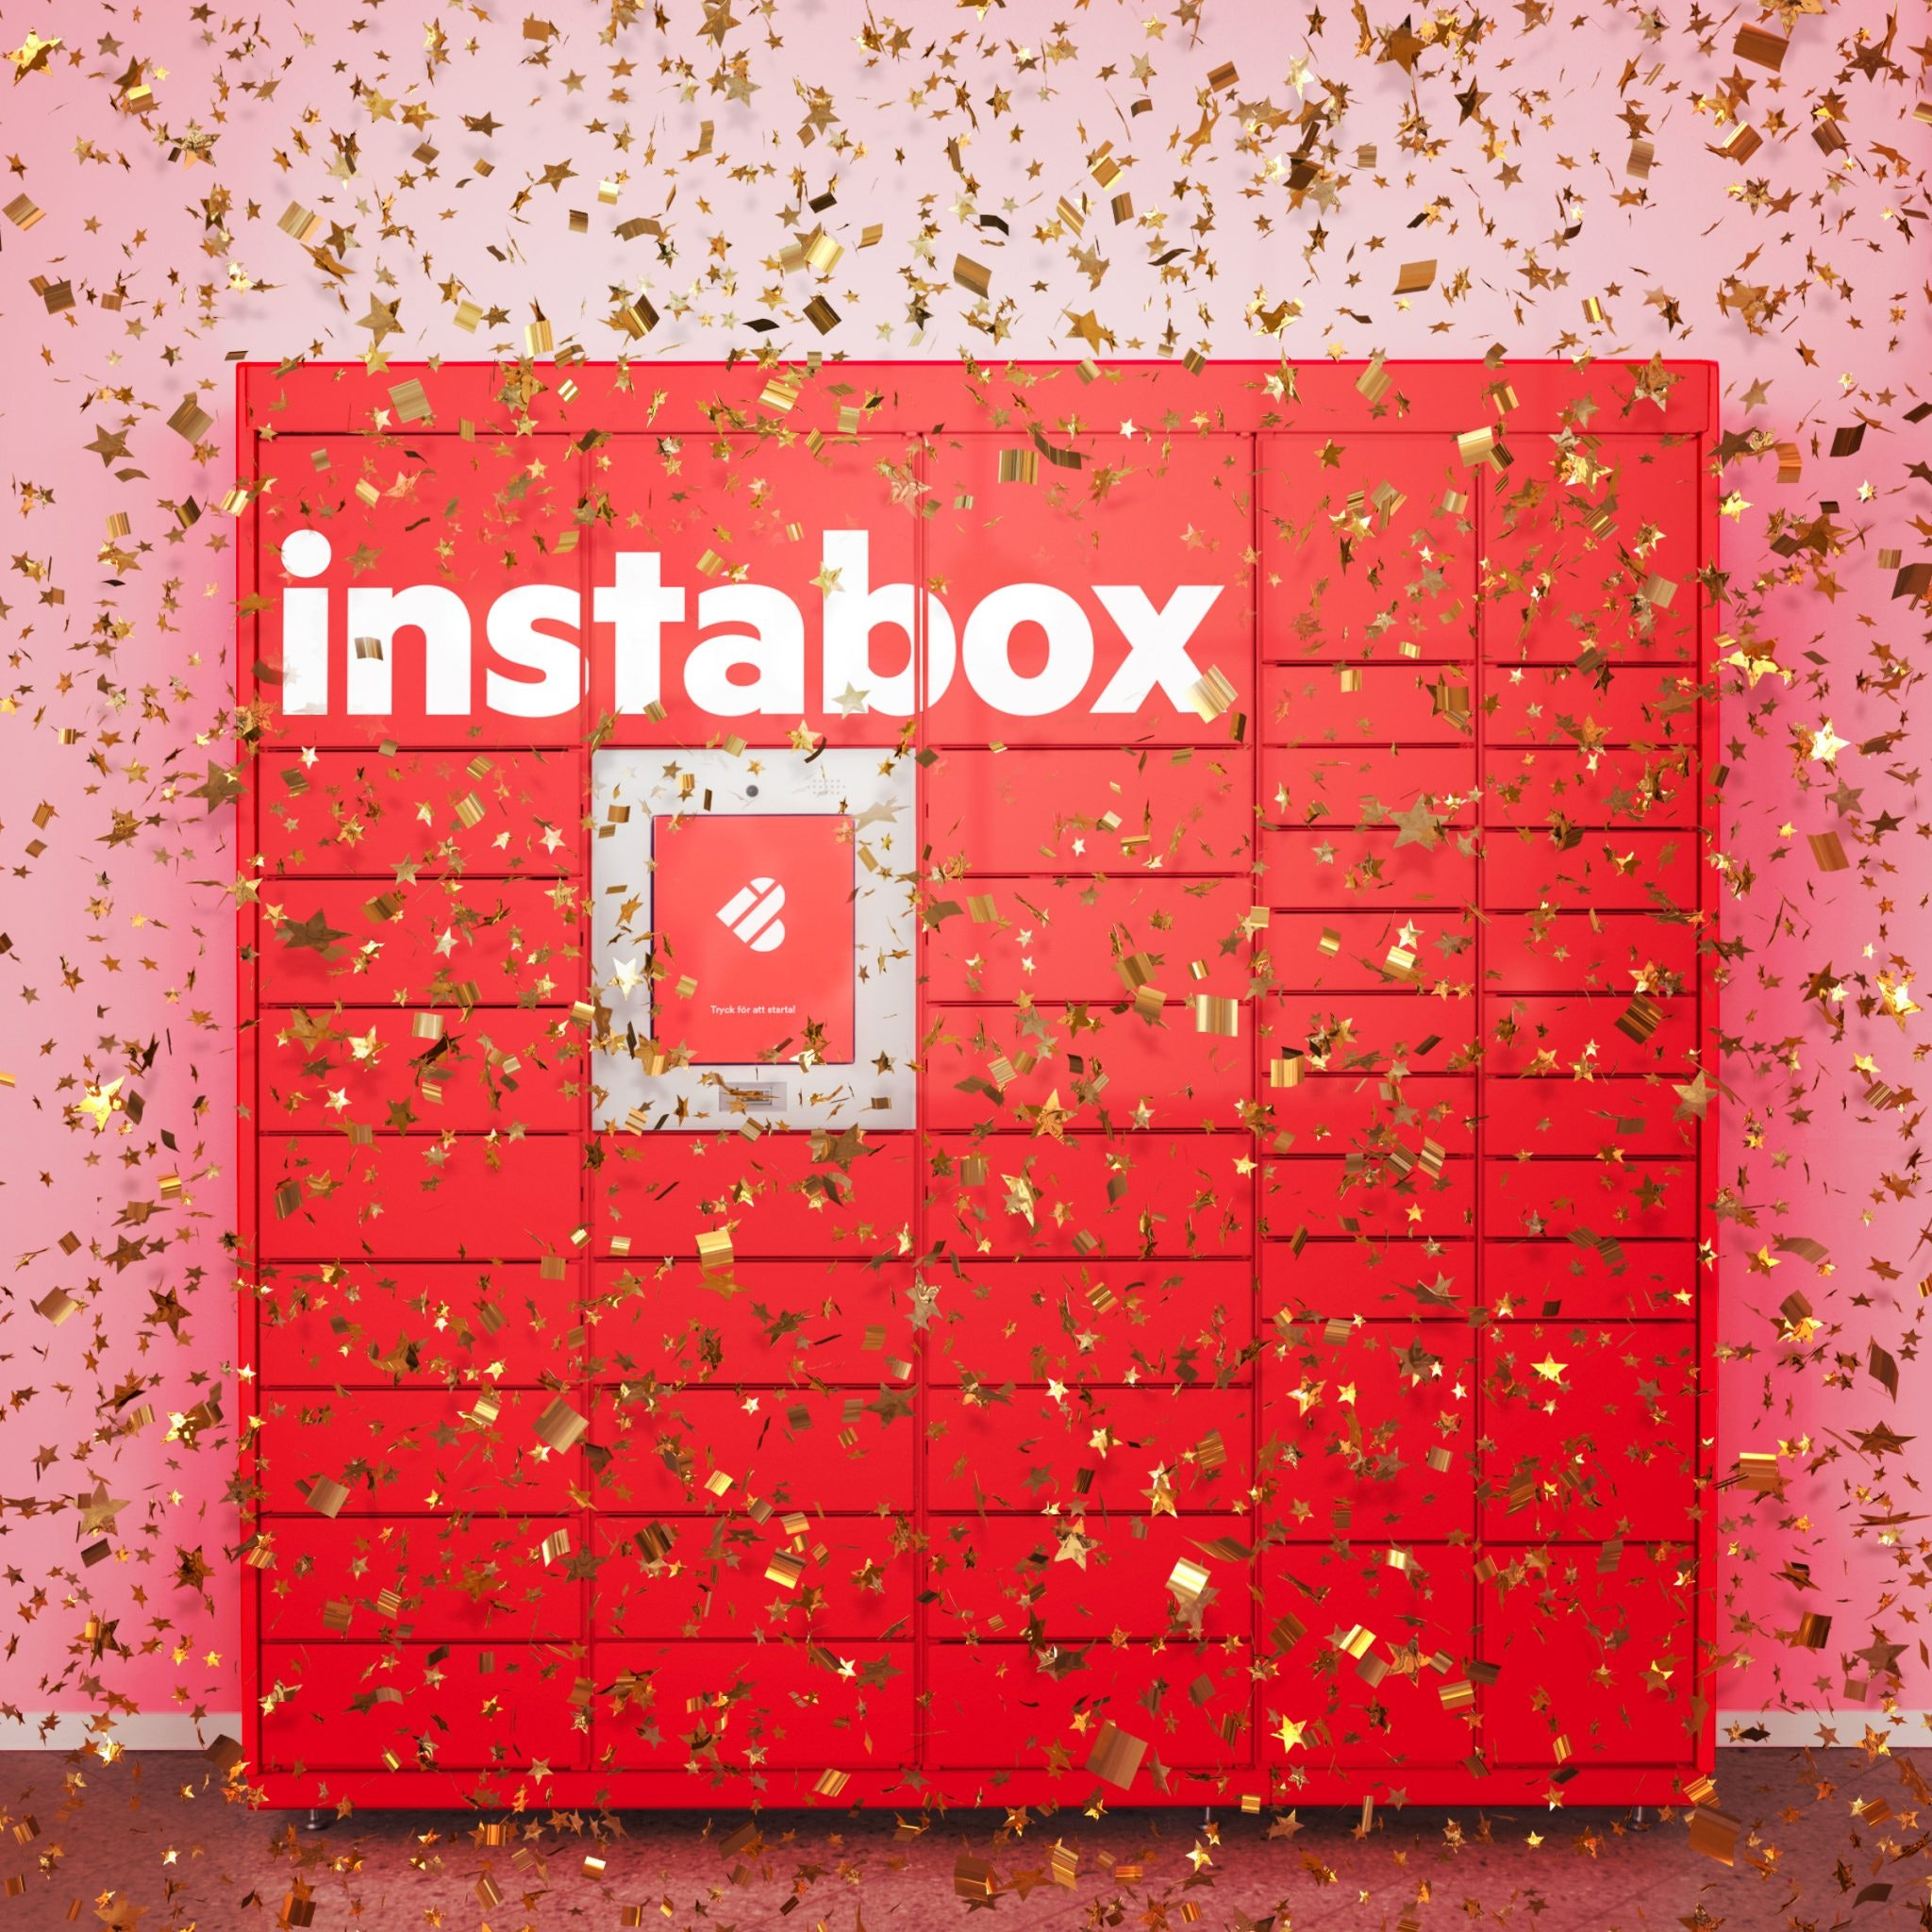 Stockholm-based smart parcel locker startup Instabox raises €75M Series B led by EQT Ventures, claims it is growing by over 300% year-on-year (Isabella Pojuner/Sifted)